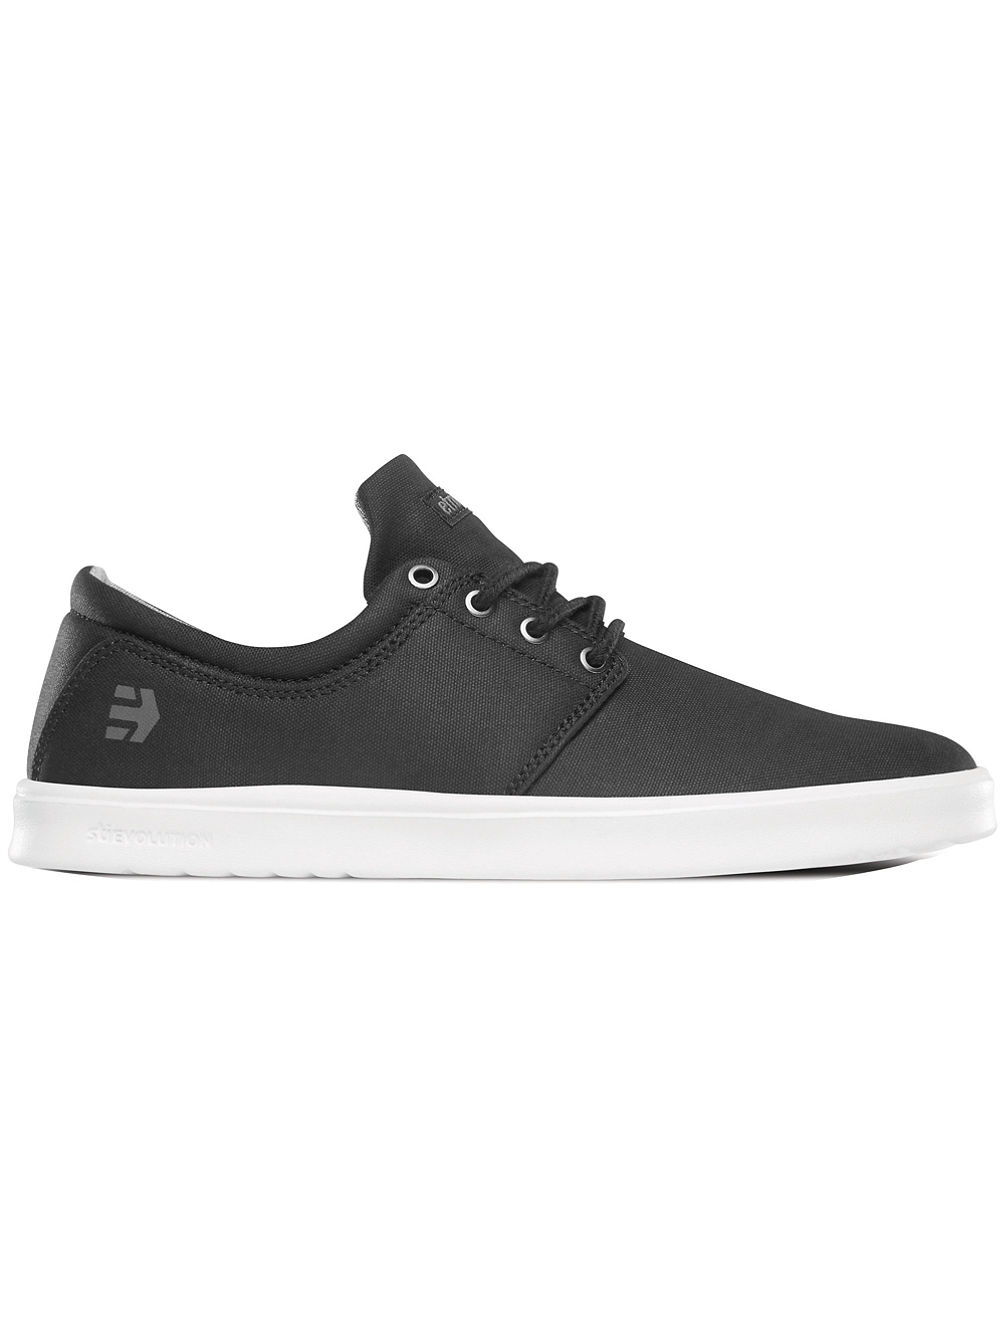 Barrage SC Skate Shoes